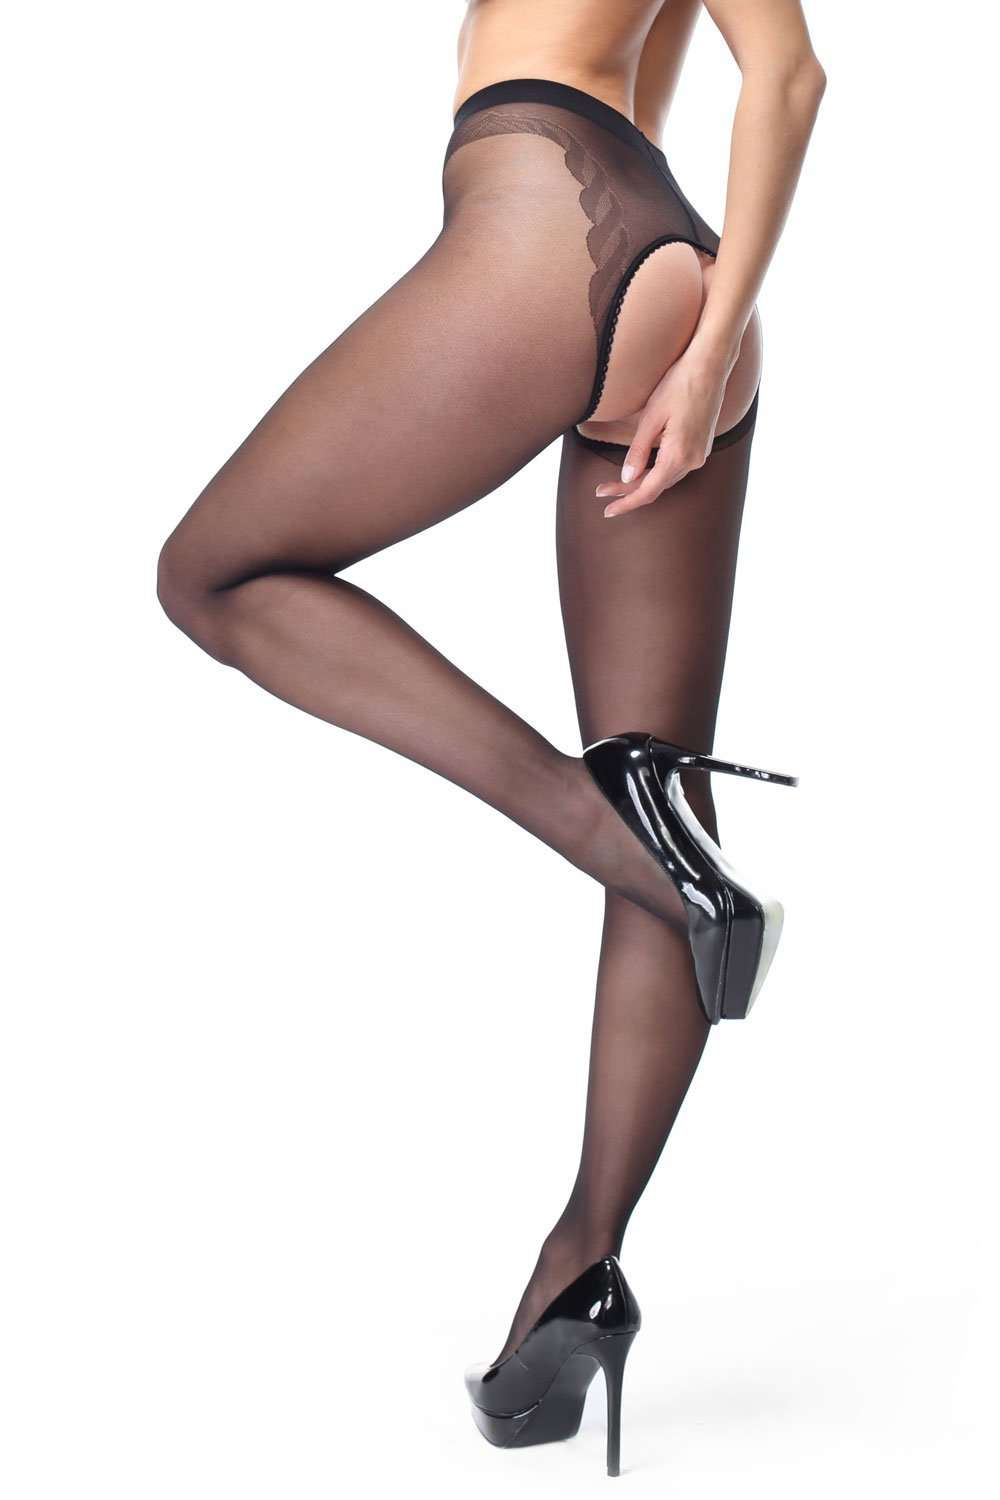 missO Patterned Pantyhose - Sheer Hosiery - Naughty Knickers